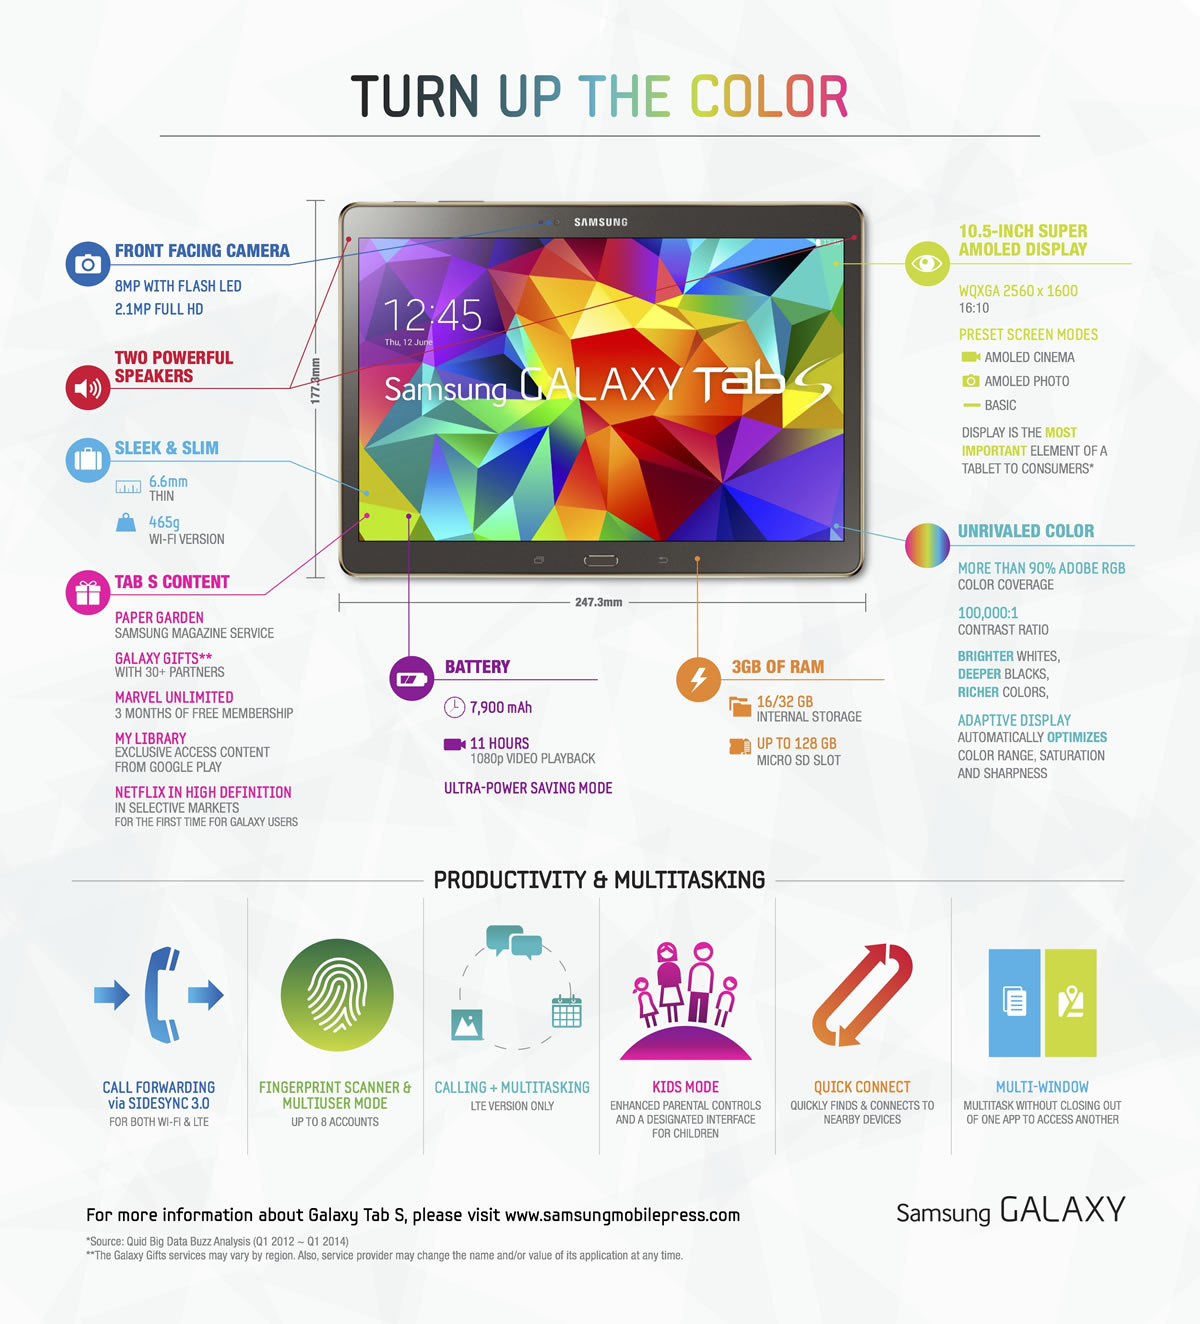 Samsung_Galaxy Tab S Infographic